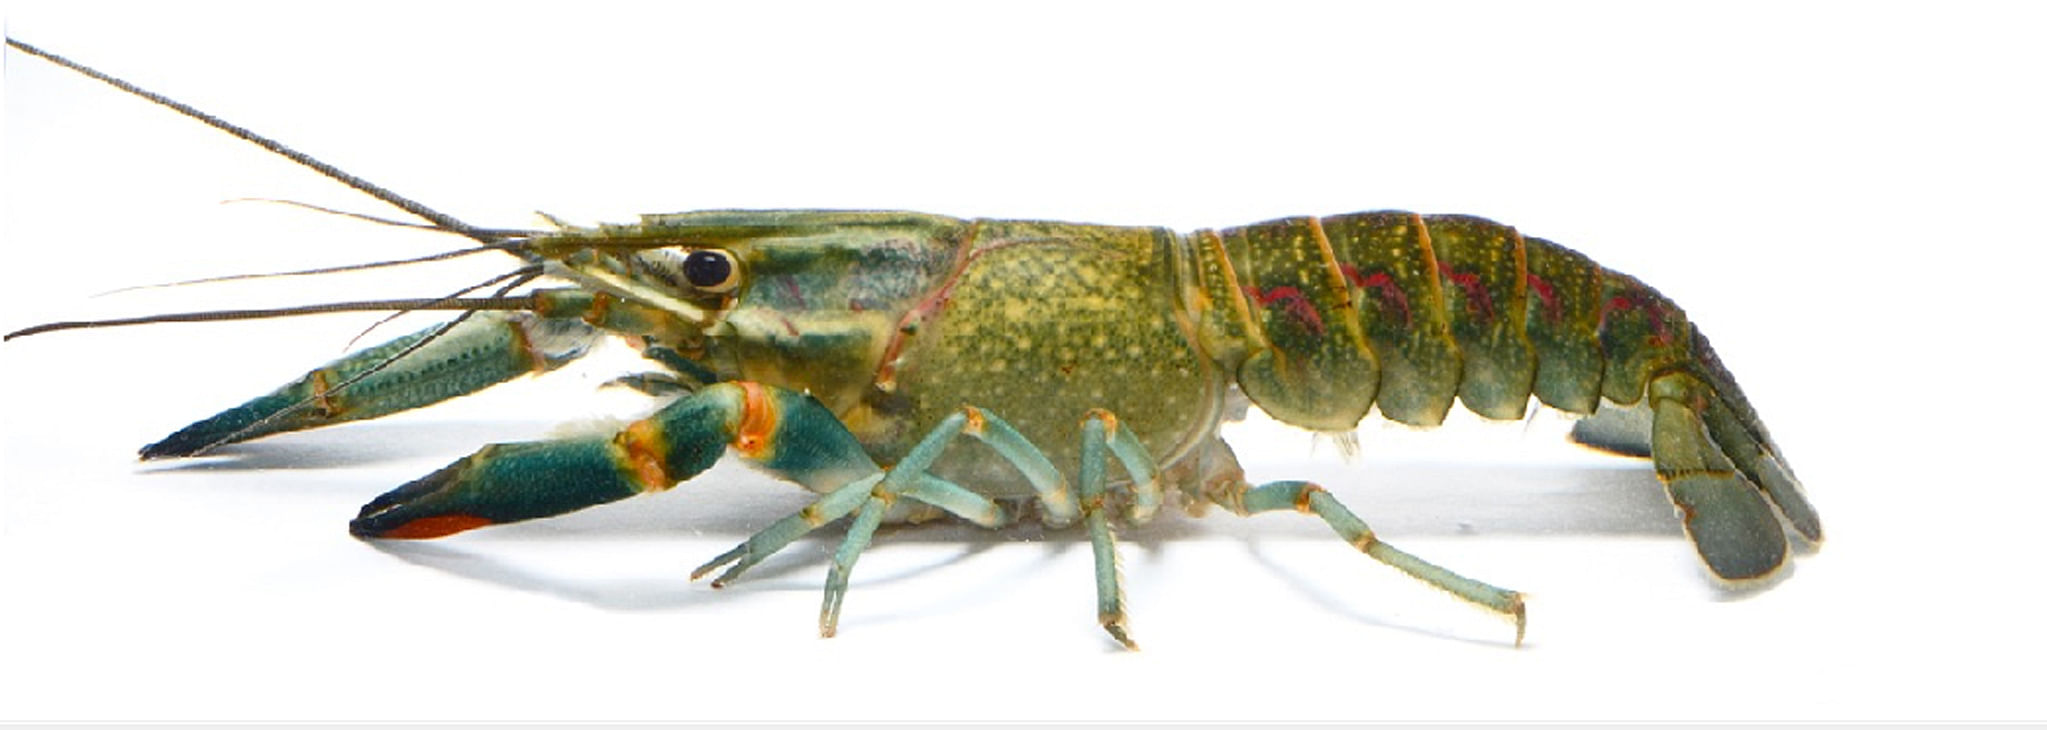 Crayfishes | MDC Discover Nature